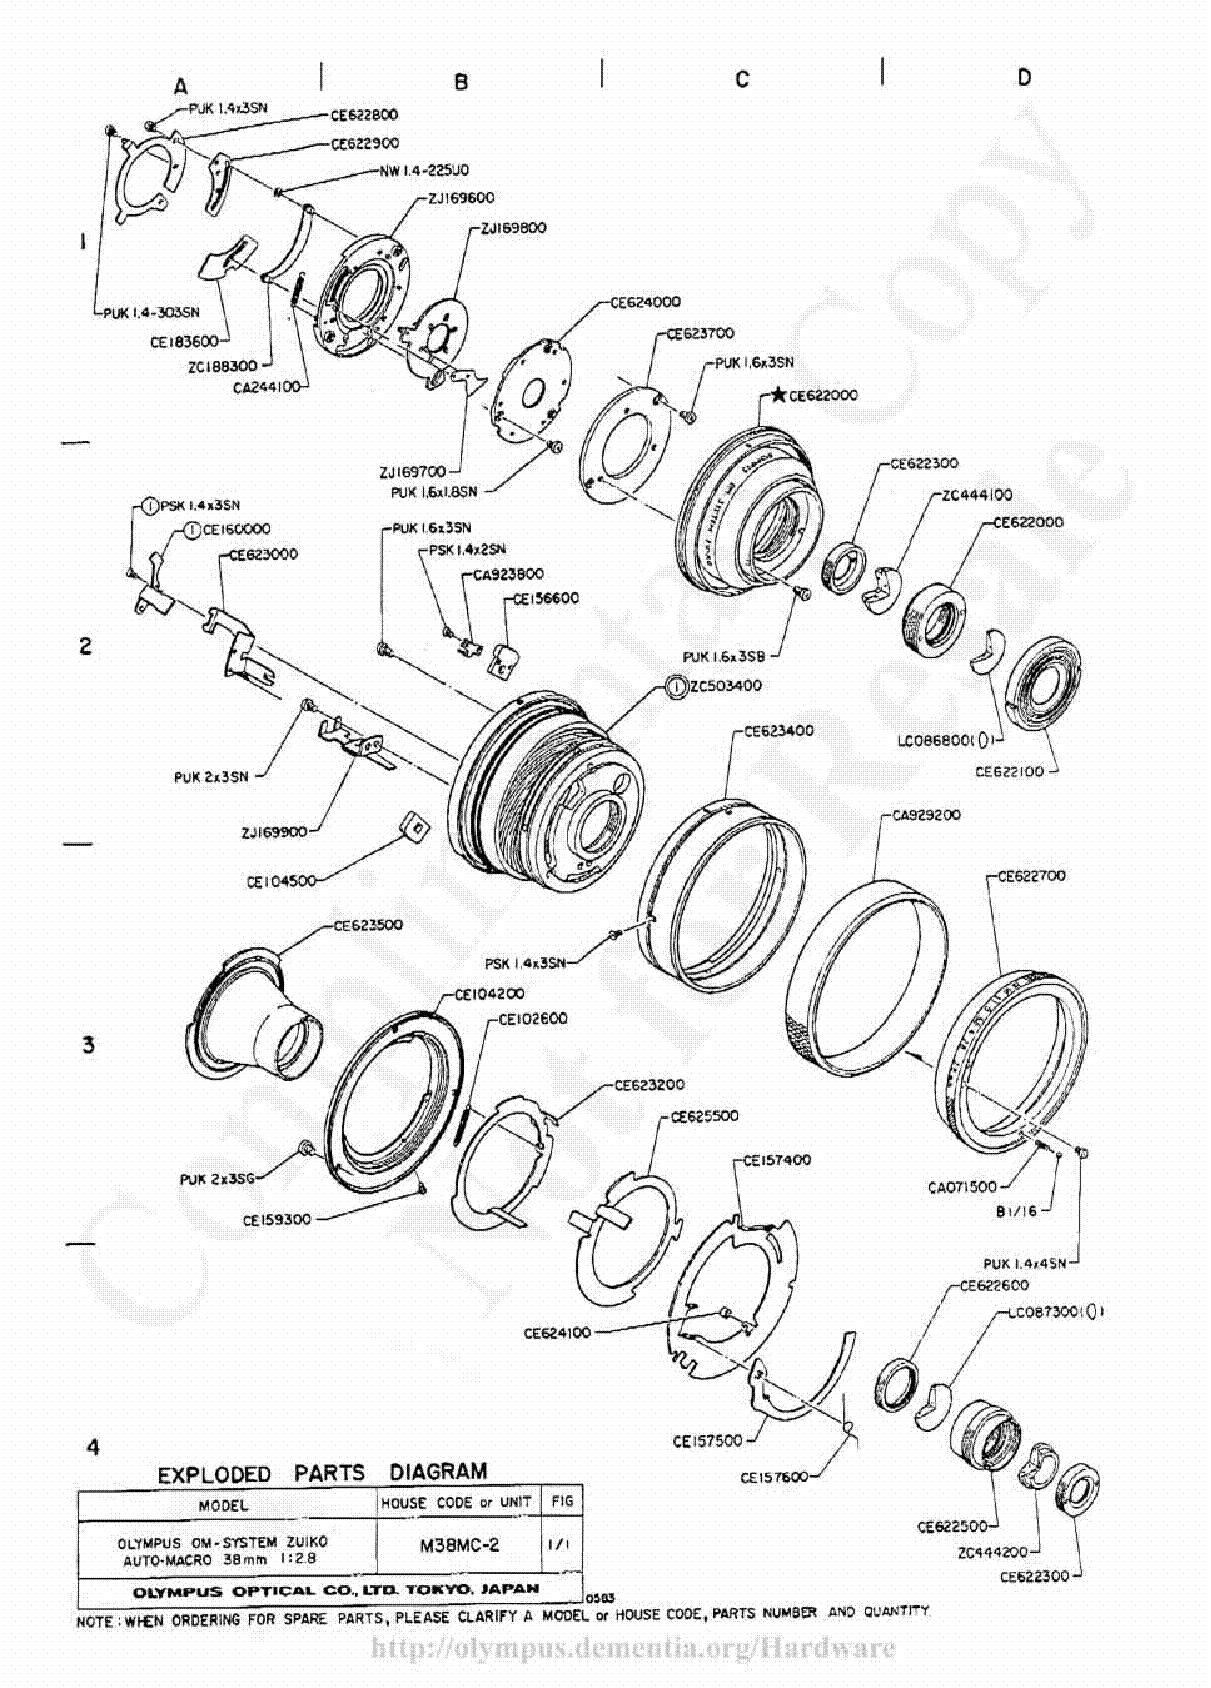 OLYMPUS 55MM F1.2 EXPLODED PARTS DIAGRAM Service Manual